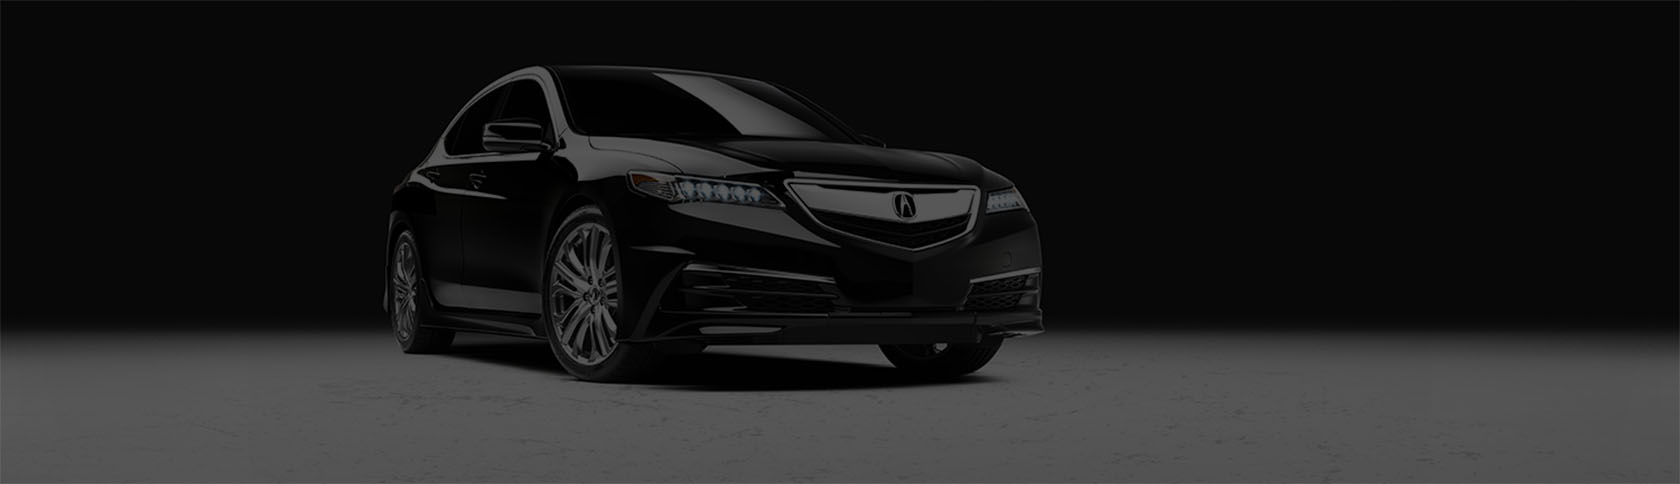 car-warranty-2015_TLX_hero_tout-02